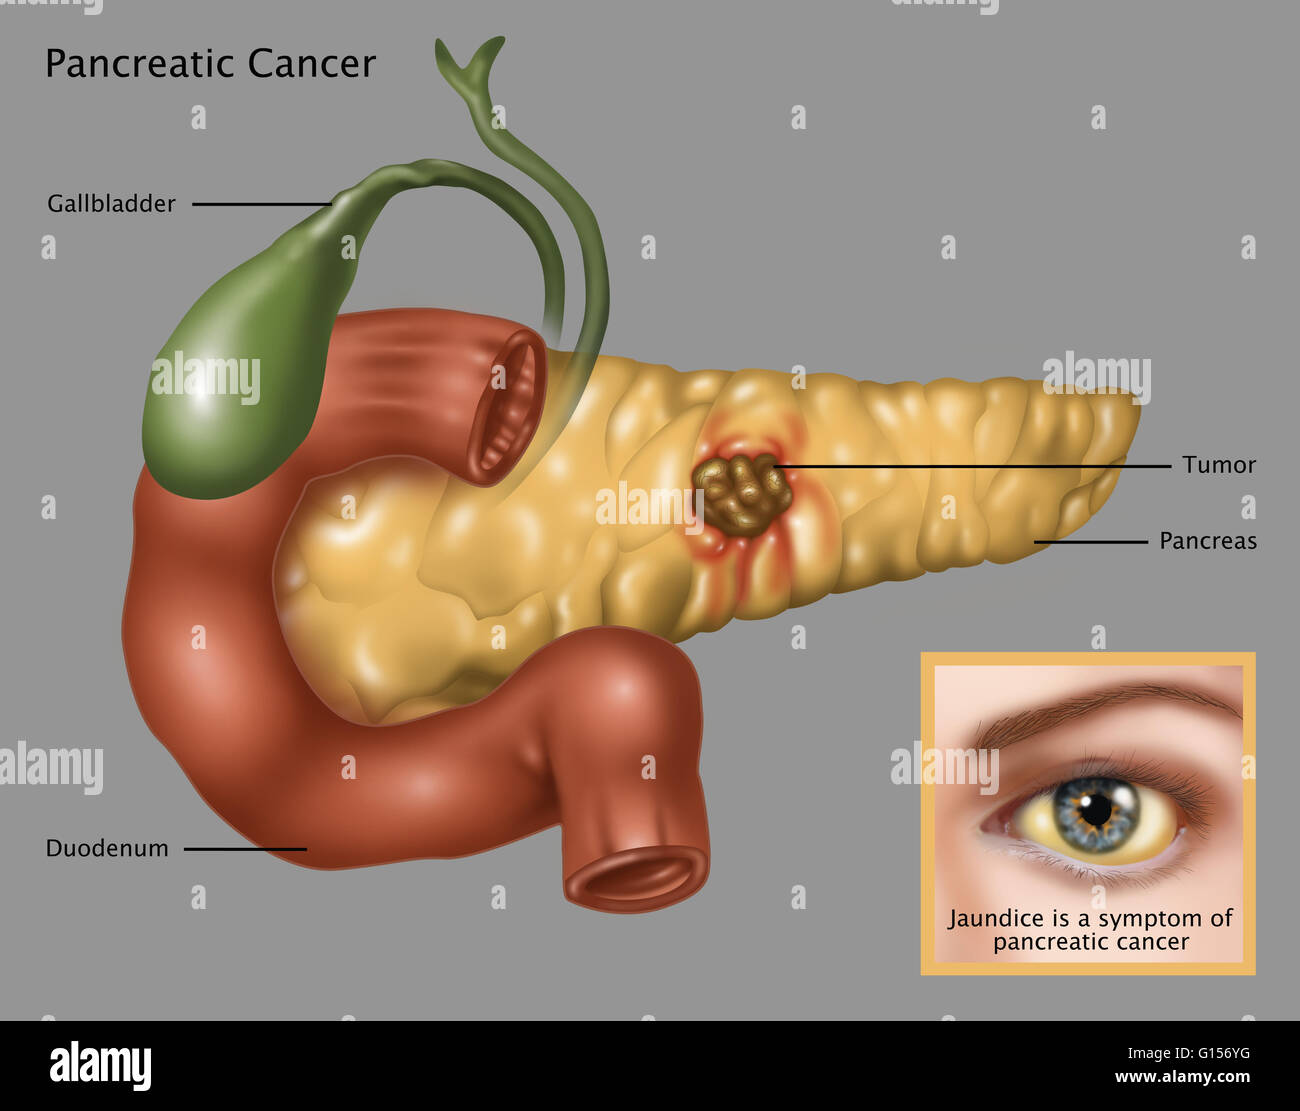 Illustration Of Pancreatic Cancer And Jaundice As A Symptom Lower